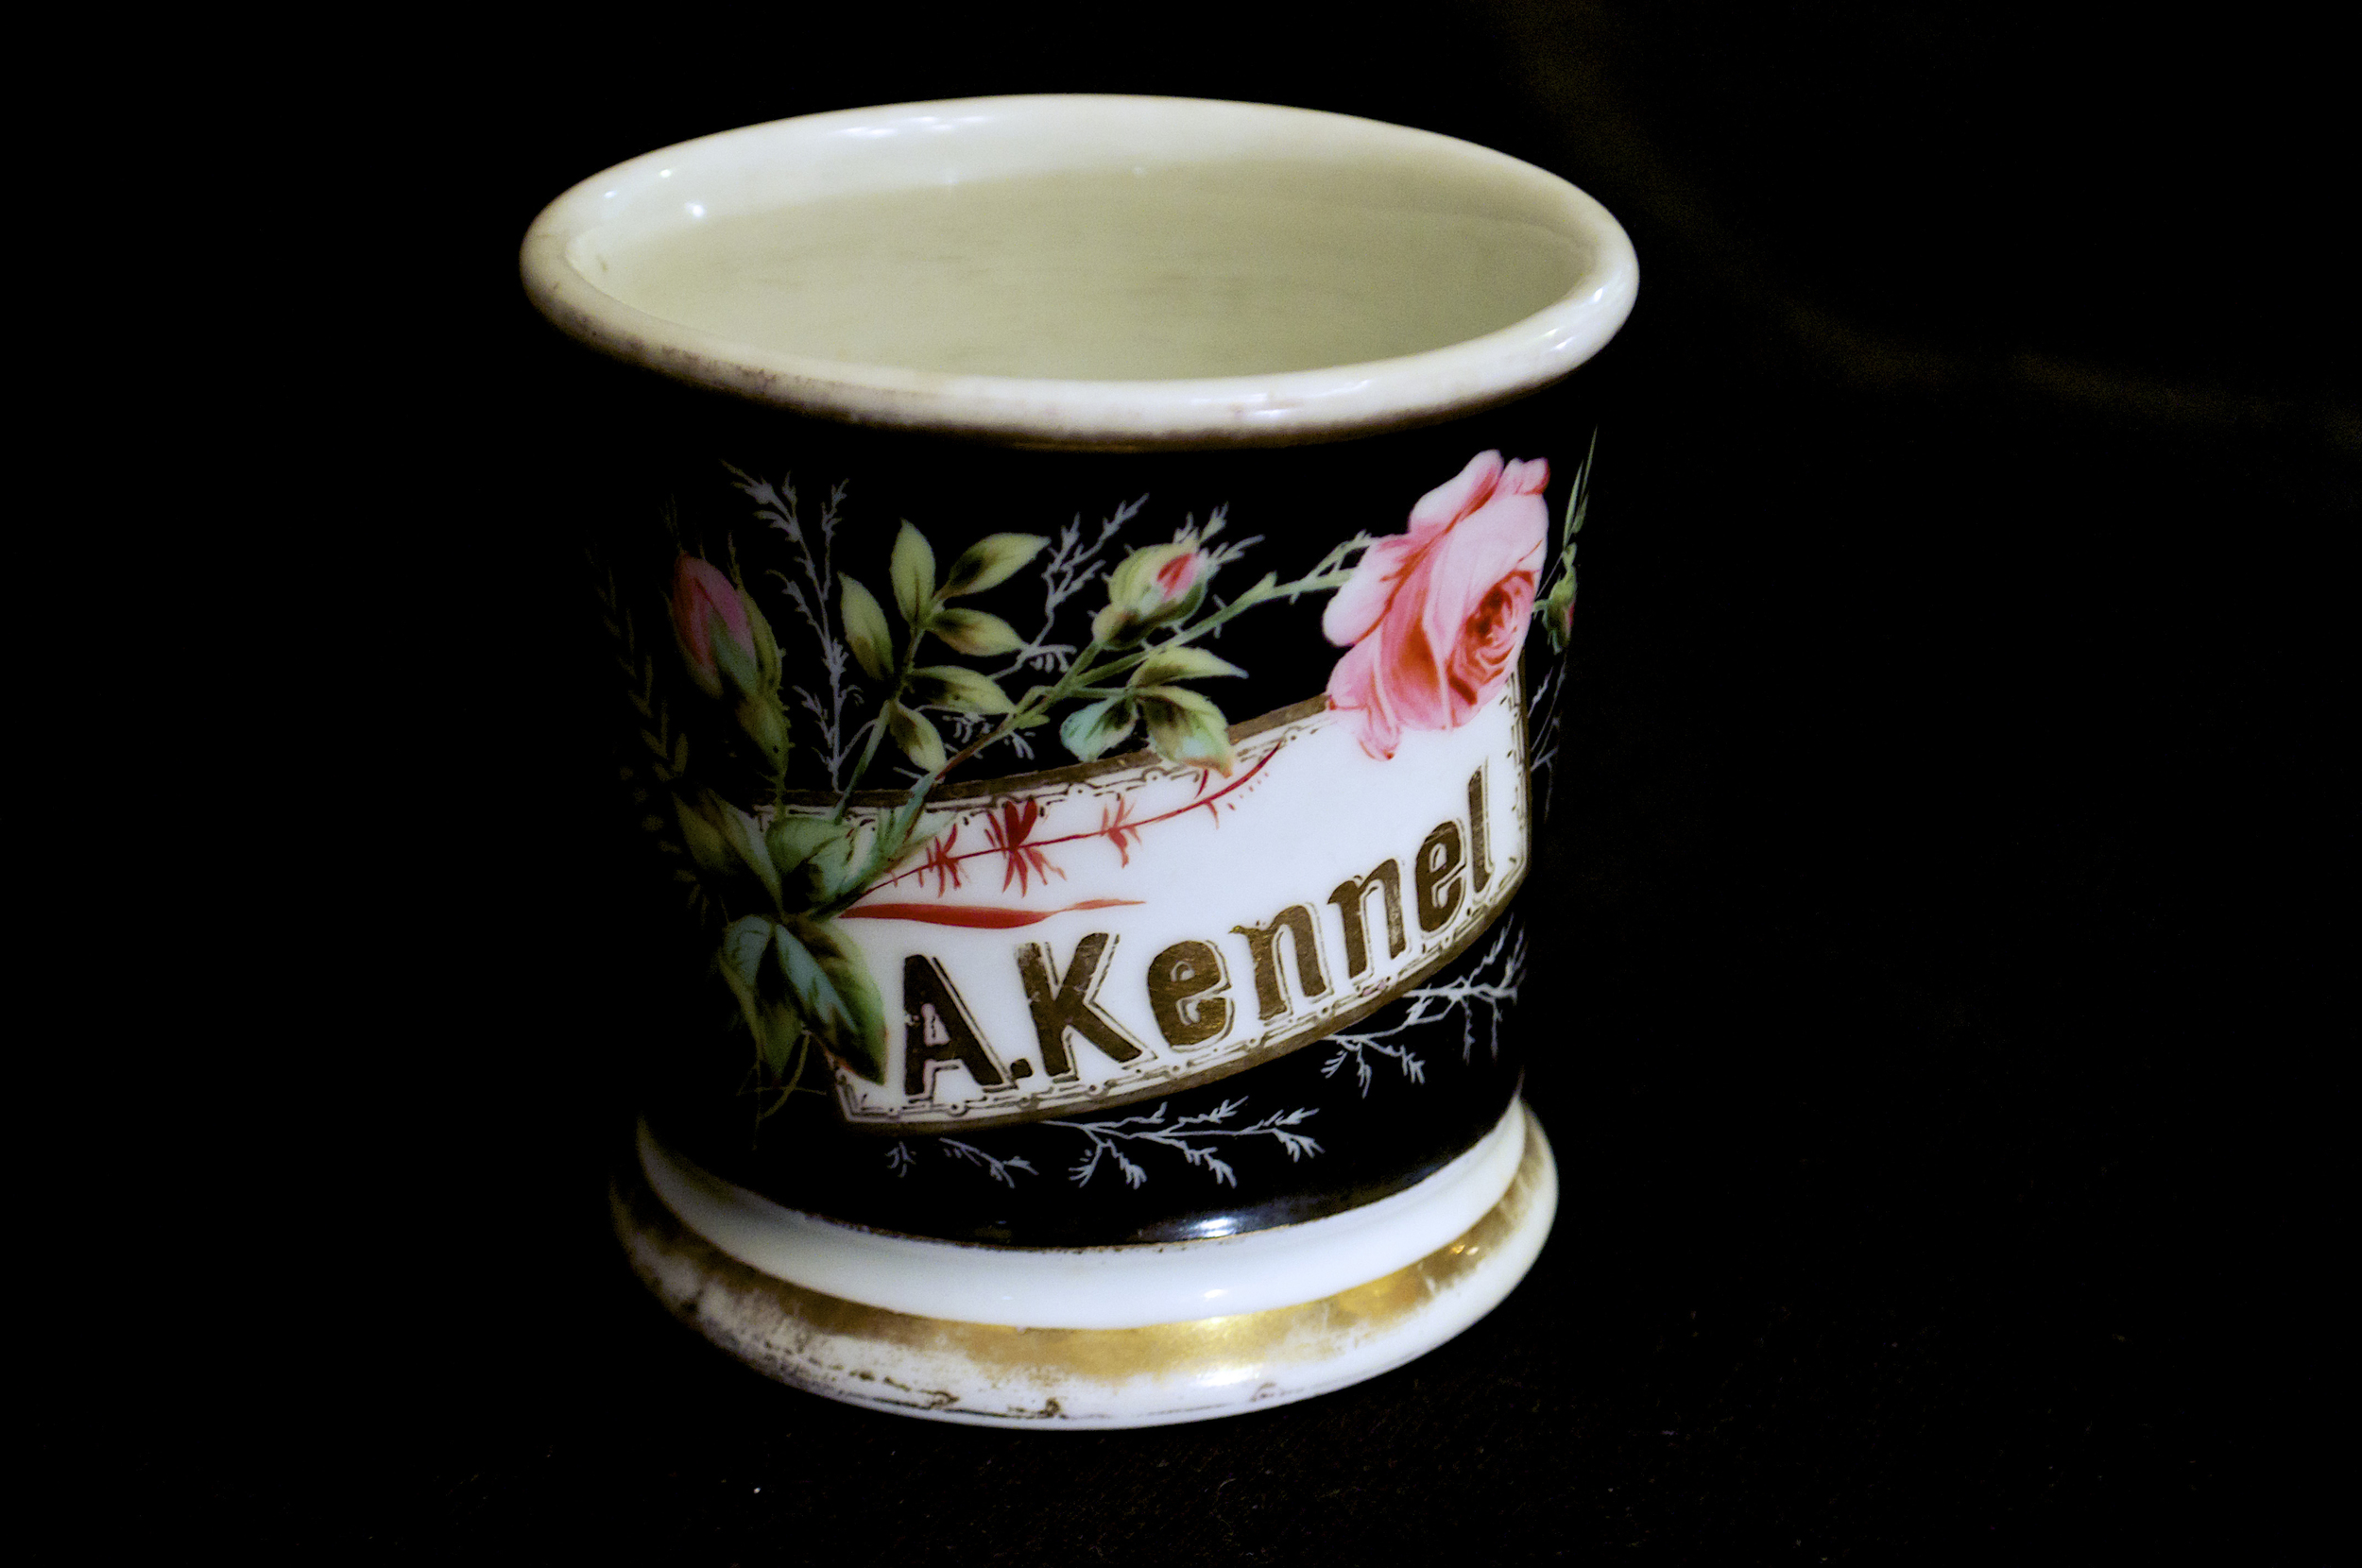 Porcelain occupational shaving mug with enamel and gilt, customized, decorator mark from Fred Bolle, circa 1900s, French (porcelain) and American (decoration).